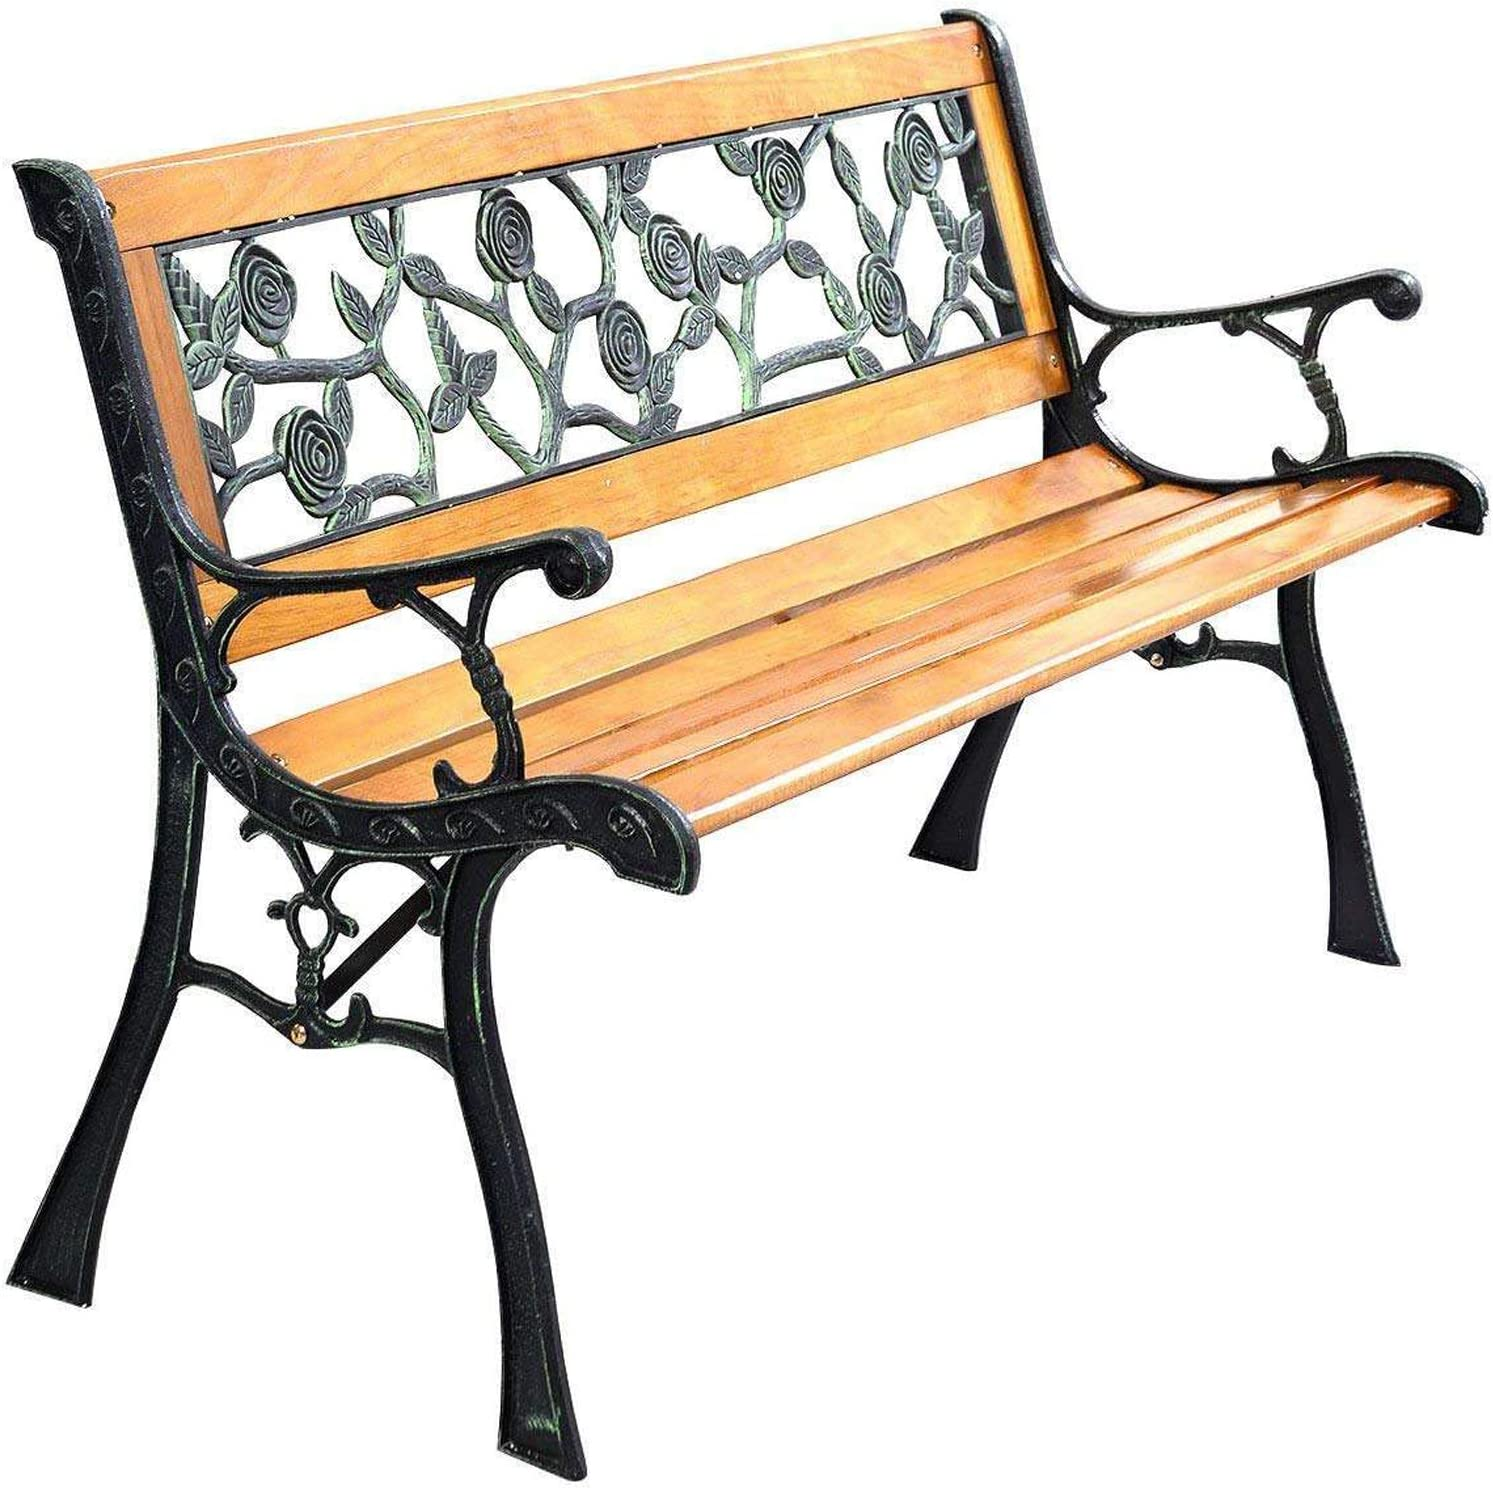 FDW Garden Bench Patio Porch Chair Deck Hardwood Cast Iron Love Seat